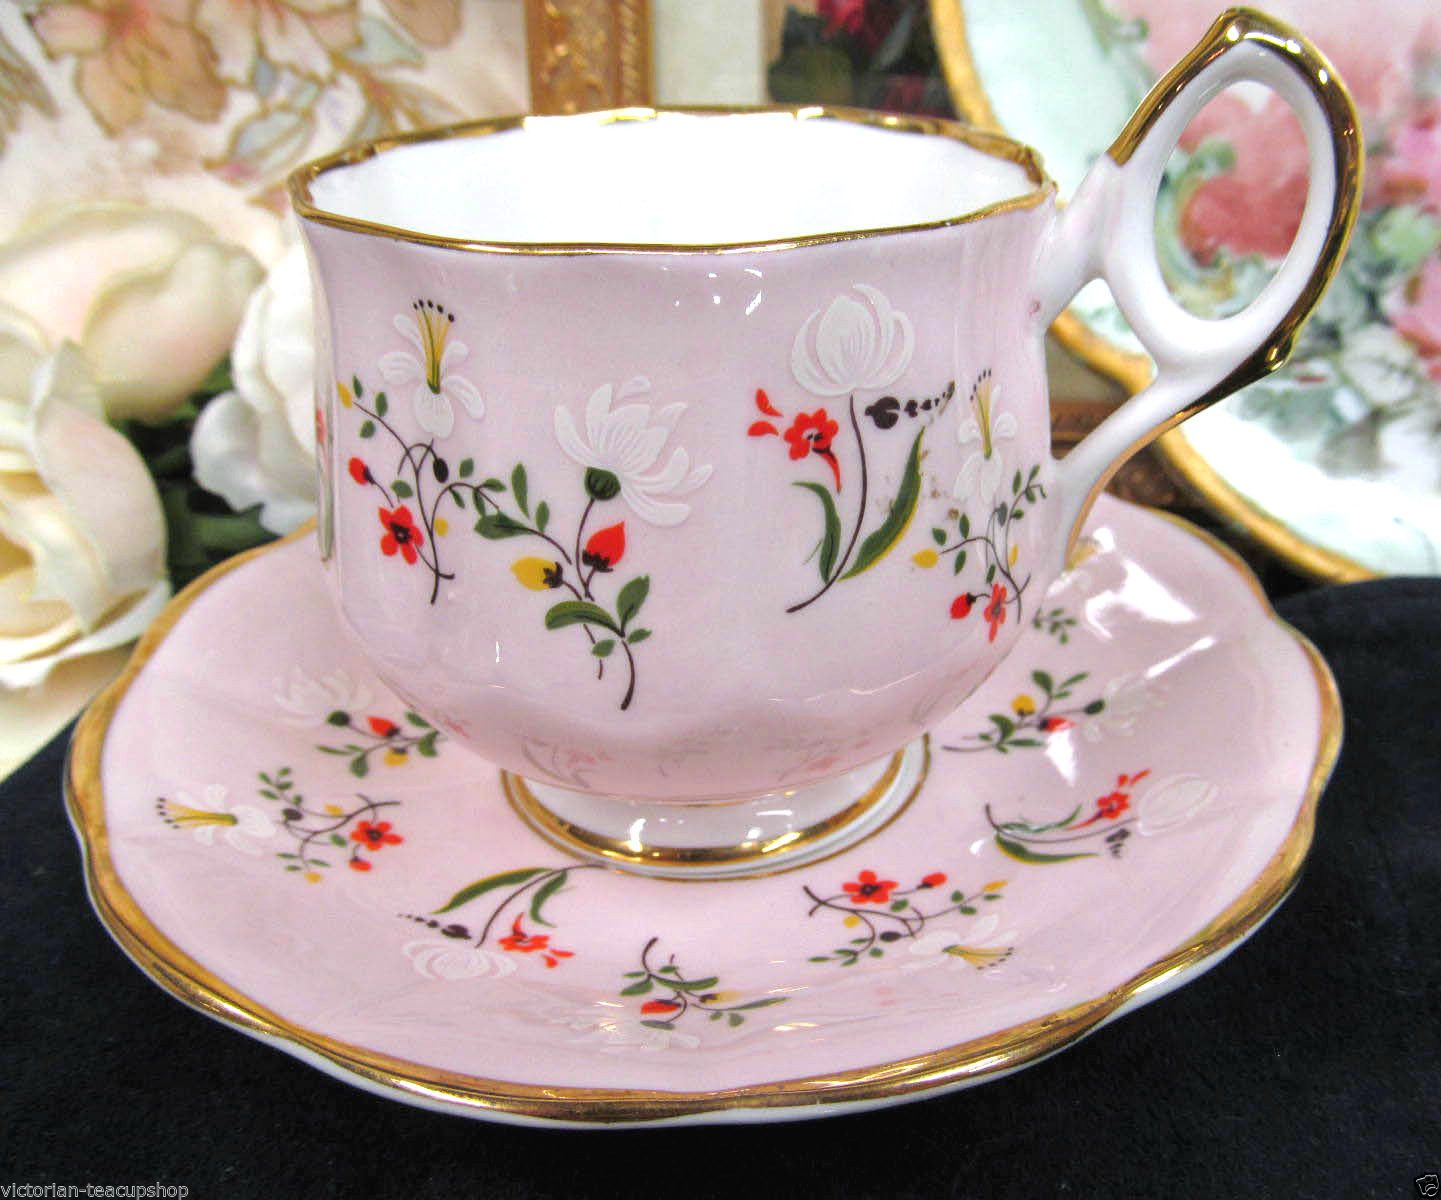 Royal albert bone china tea cup amp saucer winsome pattern ebay - Rosina Tea Cup And Saucer Delicate Pink And Floral Teacup Painted Ebay